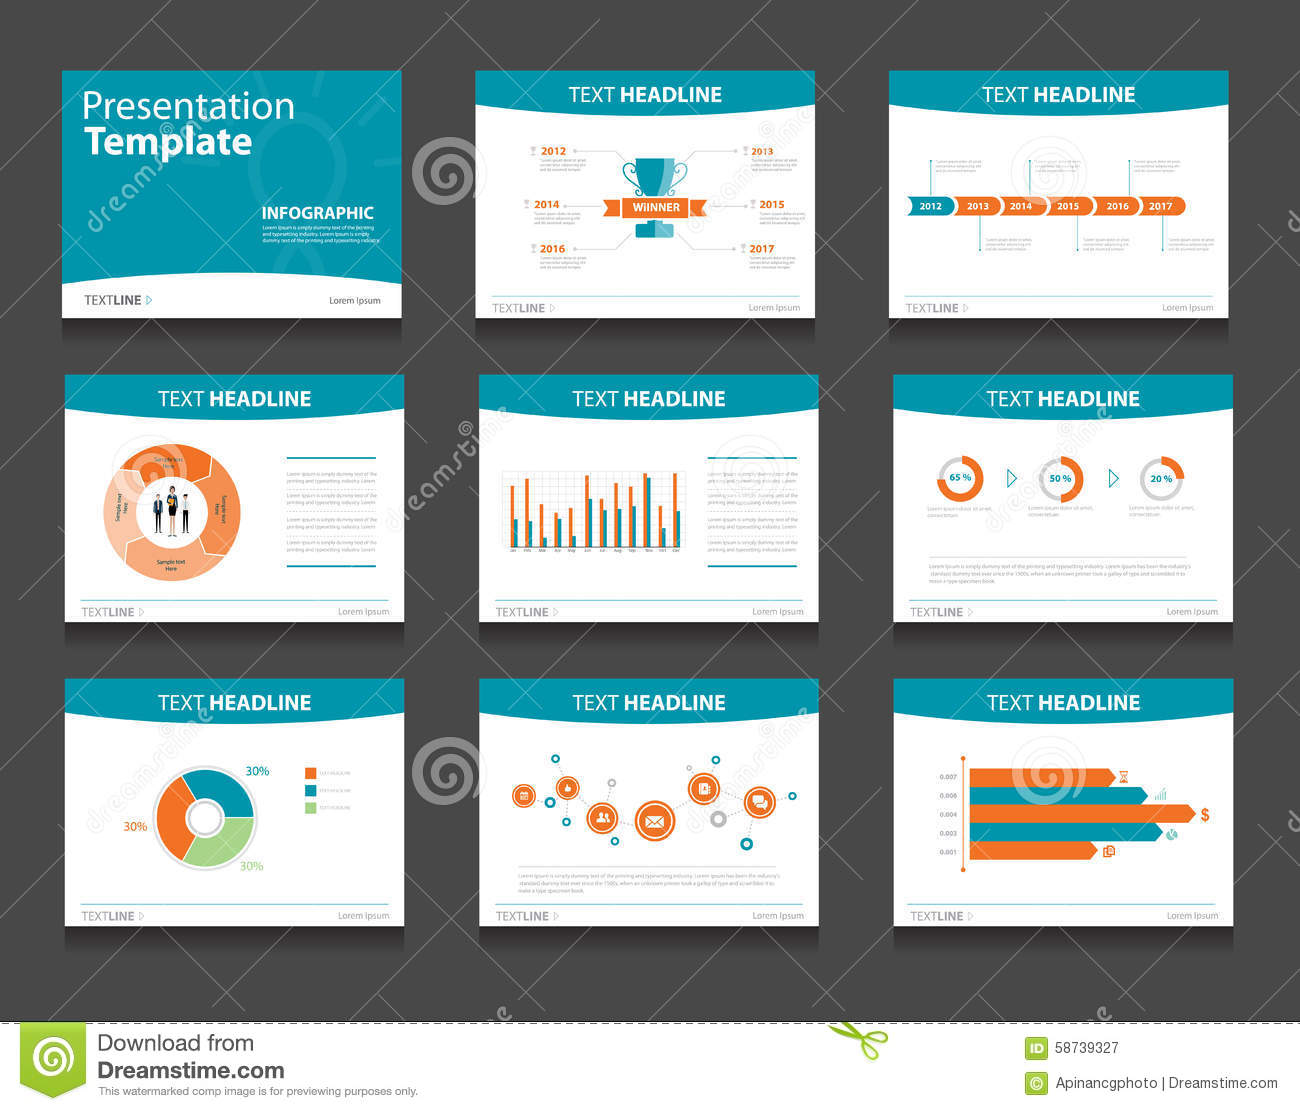 What is a presentation template?